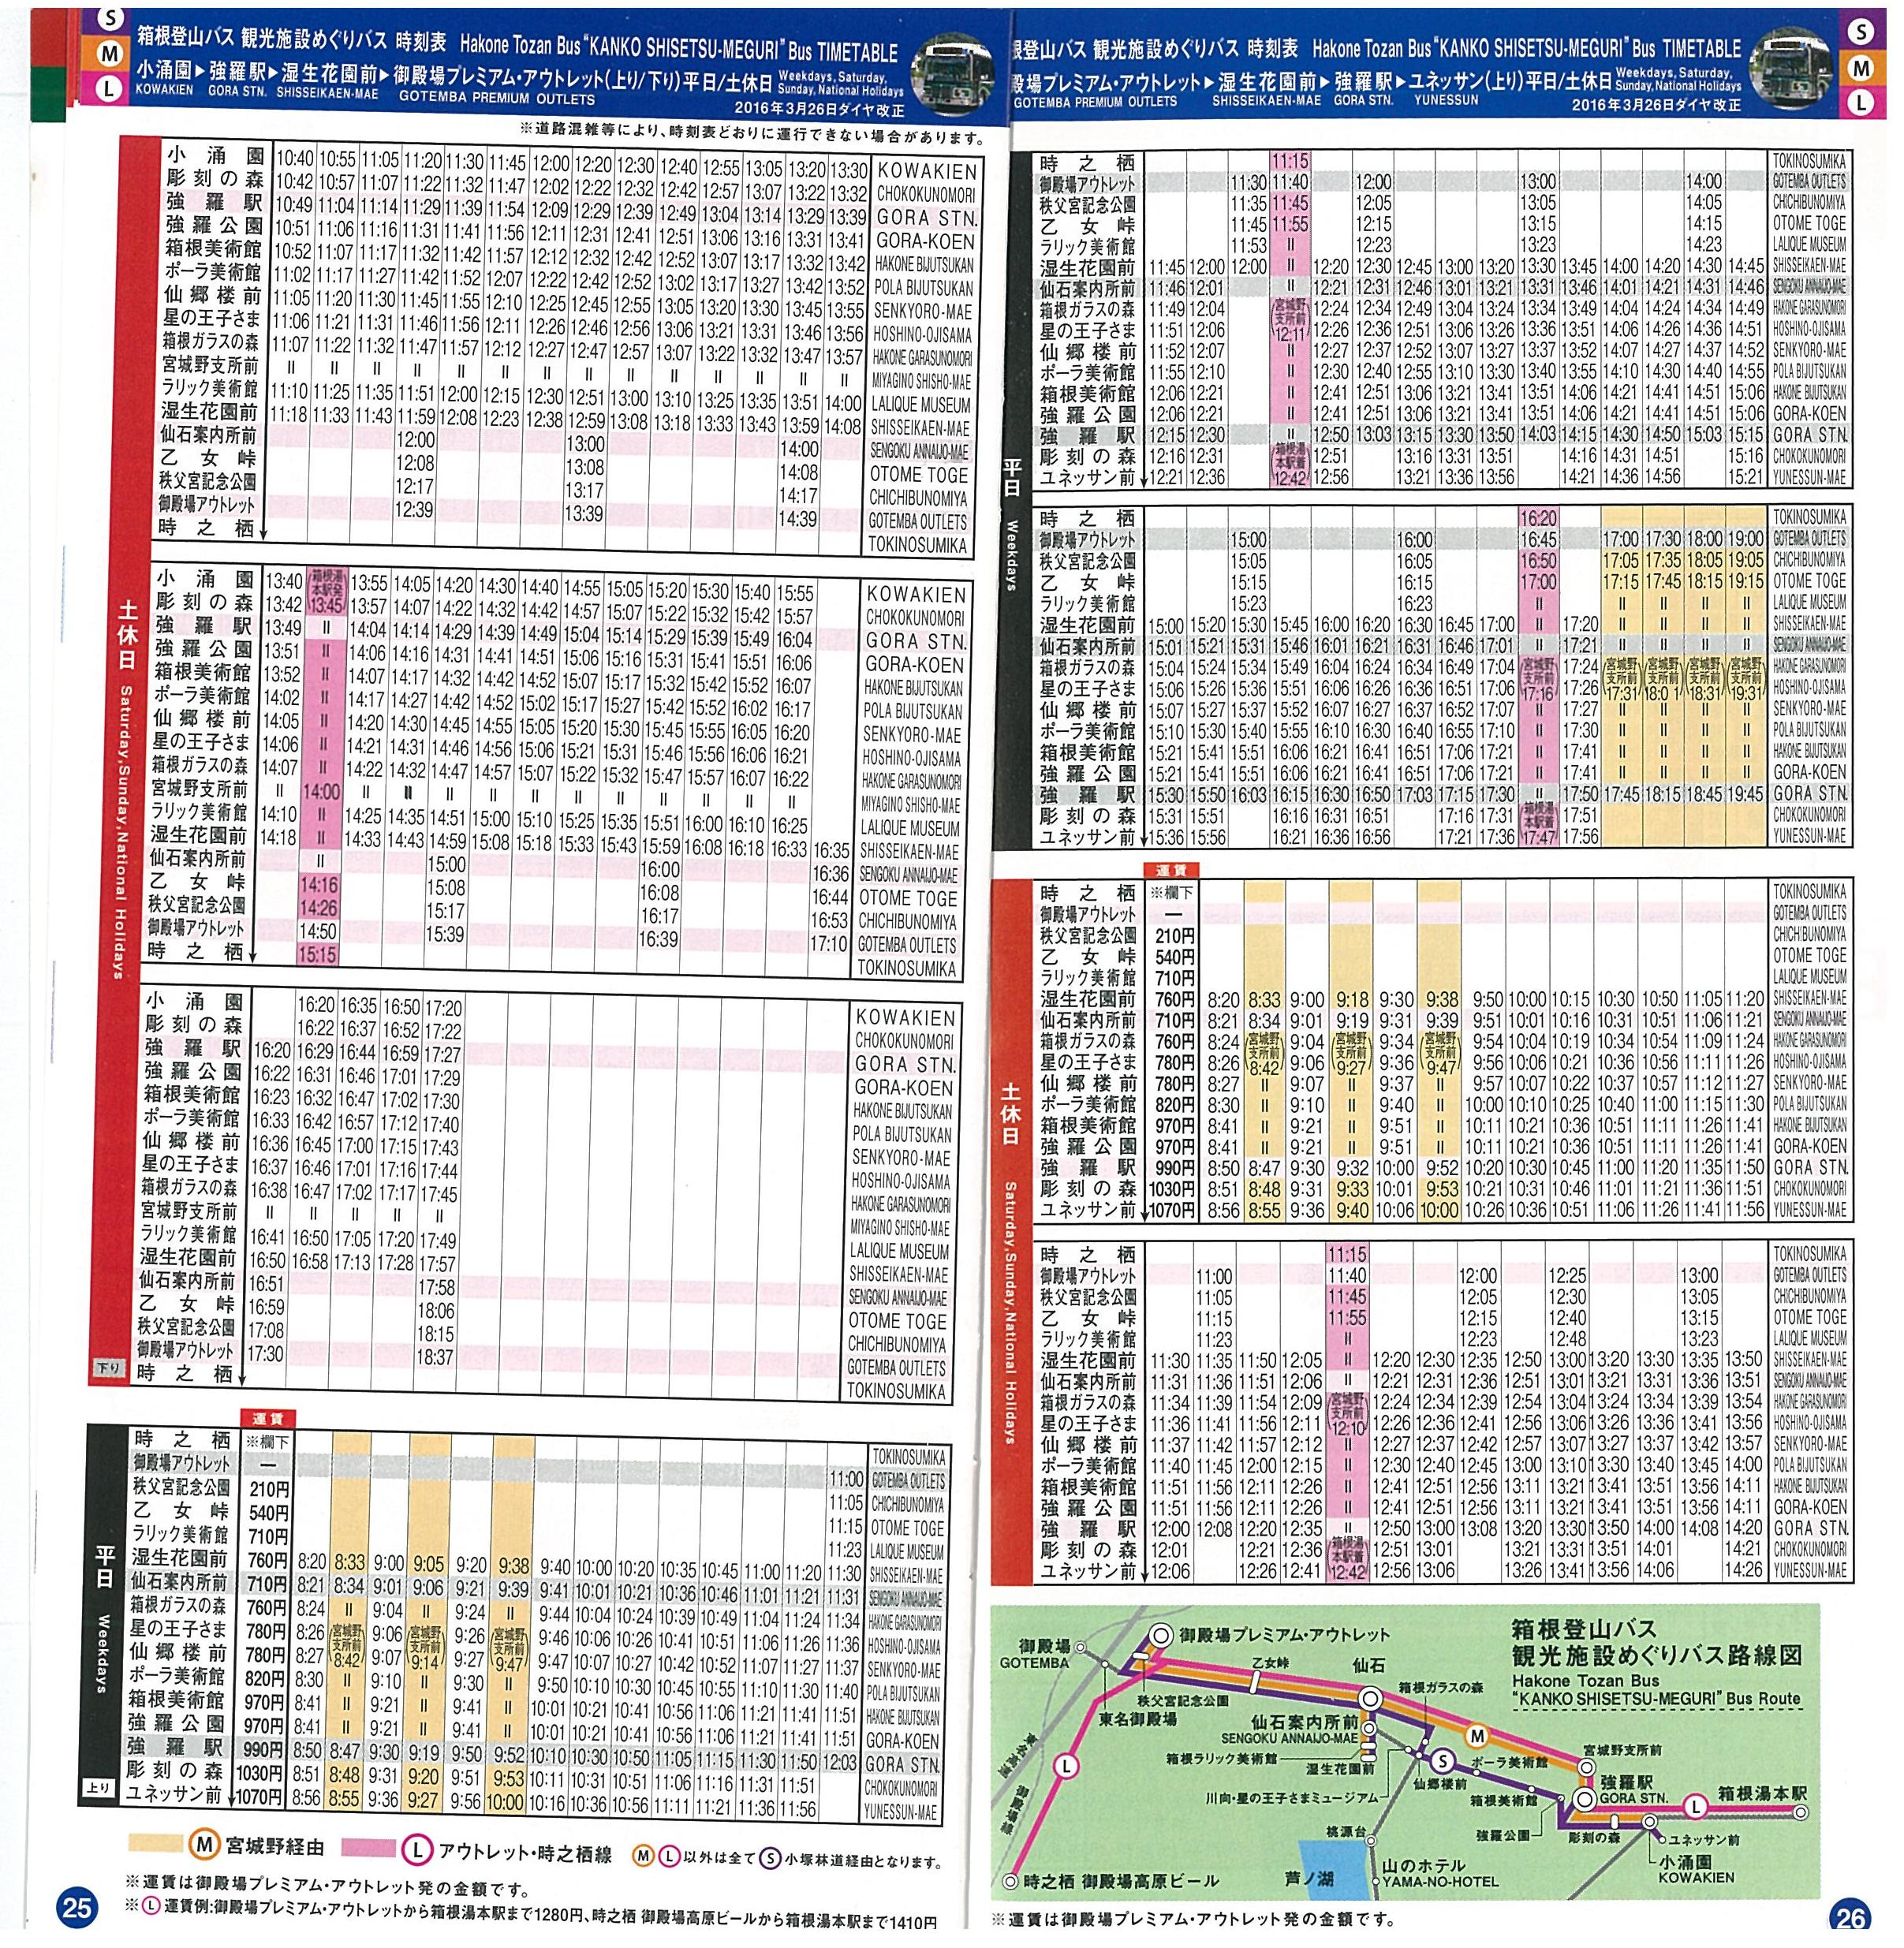 [Continuation] Day Trip from Tokyo : Hakone 箱根. Maps and timeteables. Pages 25 and 26. Hakone Tozan Bus Kanko Shisetsu Meguri Route Timetables 箱根登山バス 観光施設めぐりバス時刻表